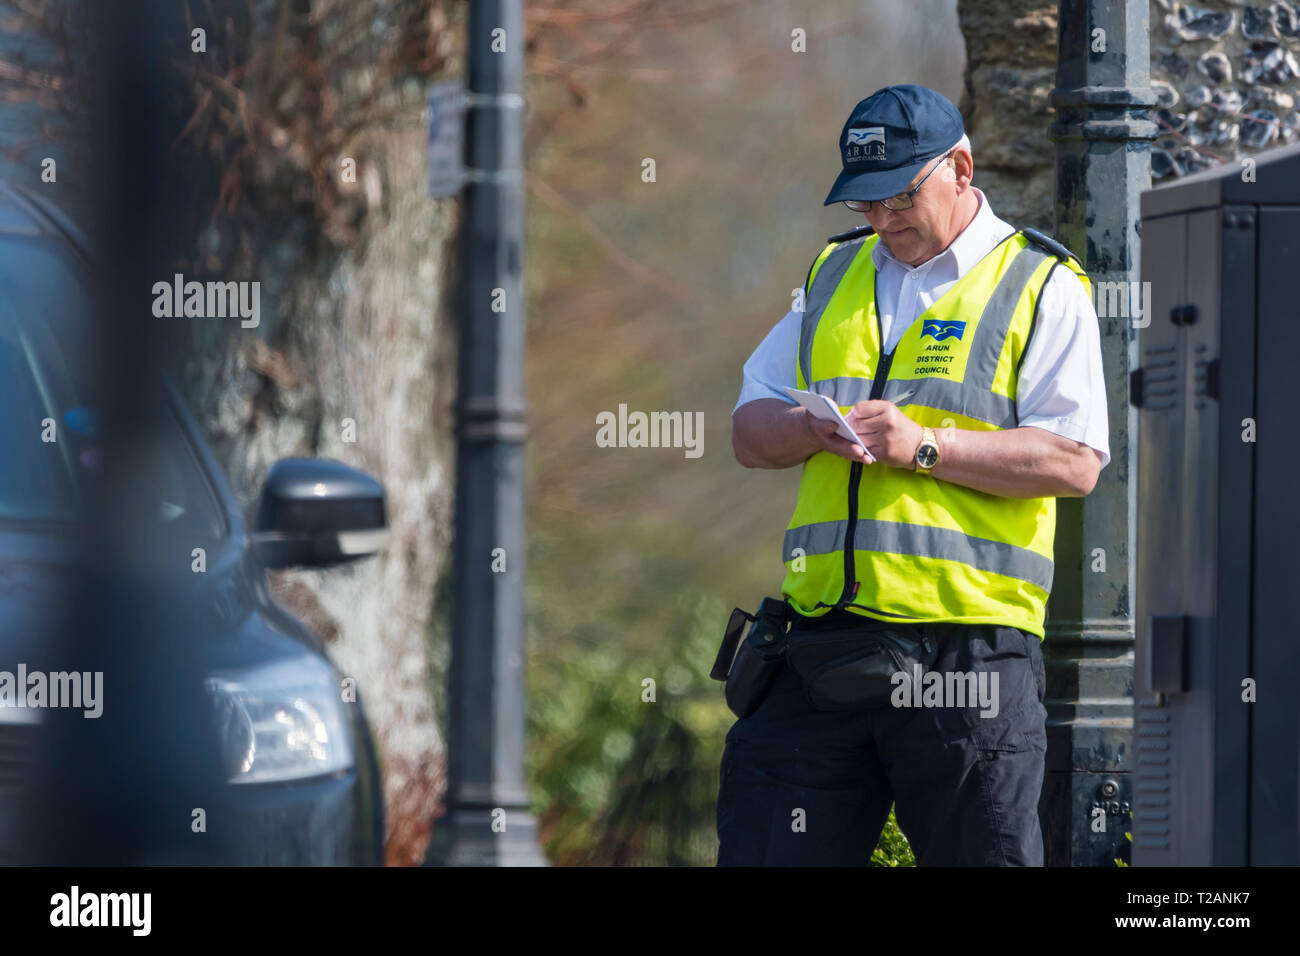 Male traffic warden from the council writing out a parking ticket in the UK. - Stock Image